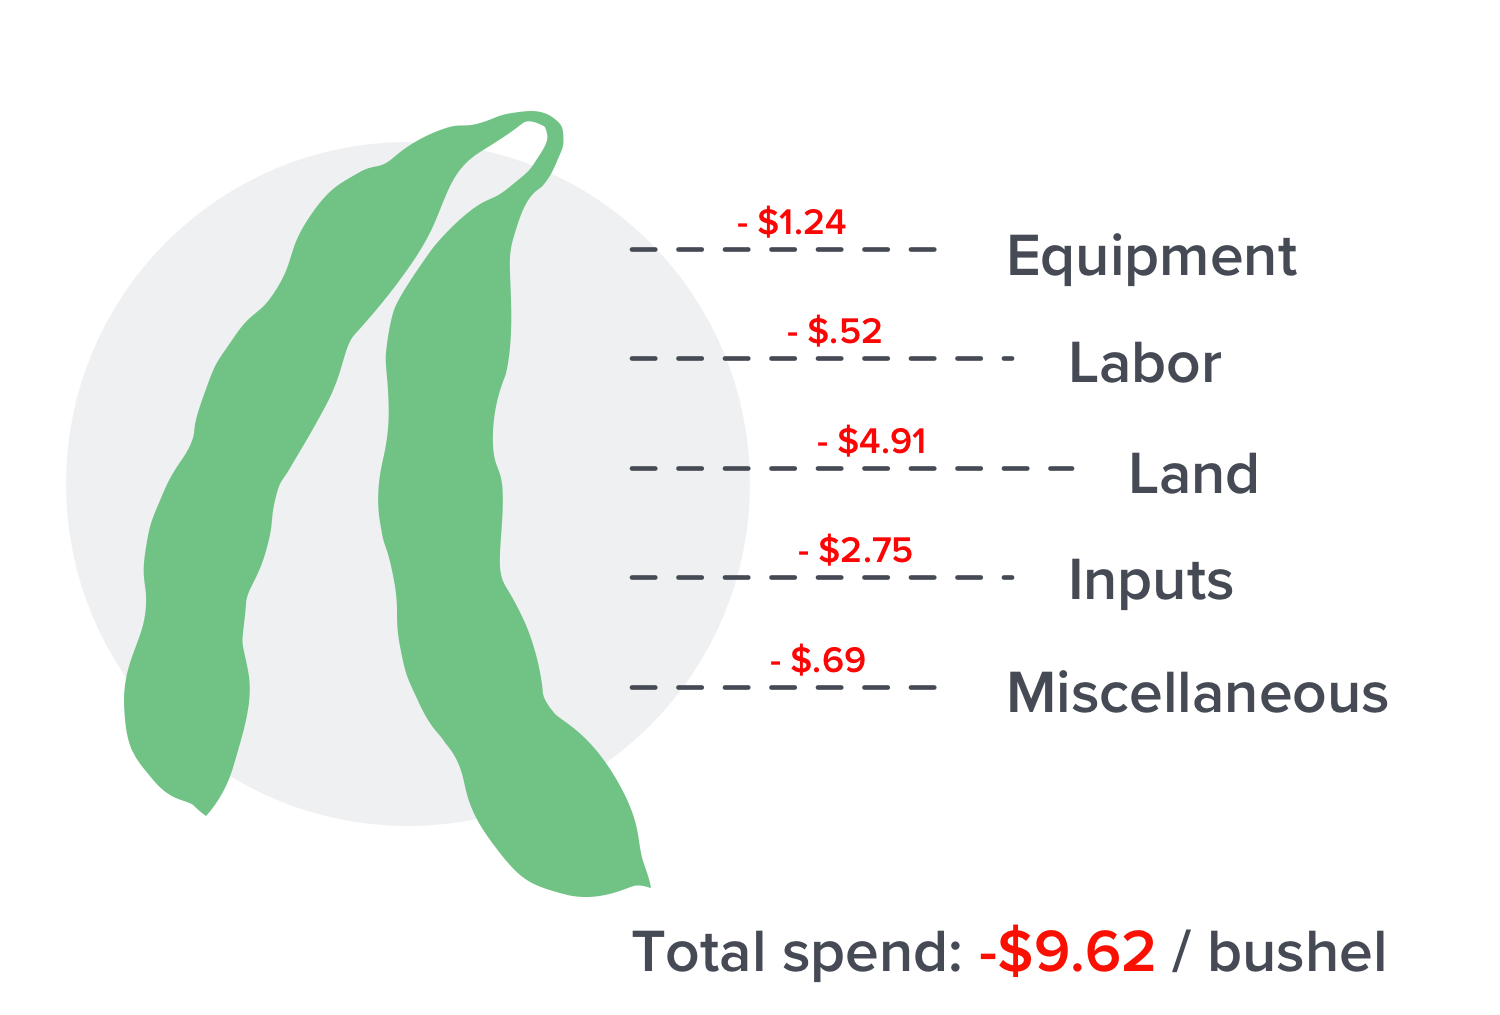 sample costs of growing soybeans per bushel